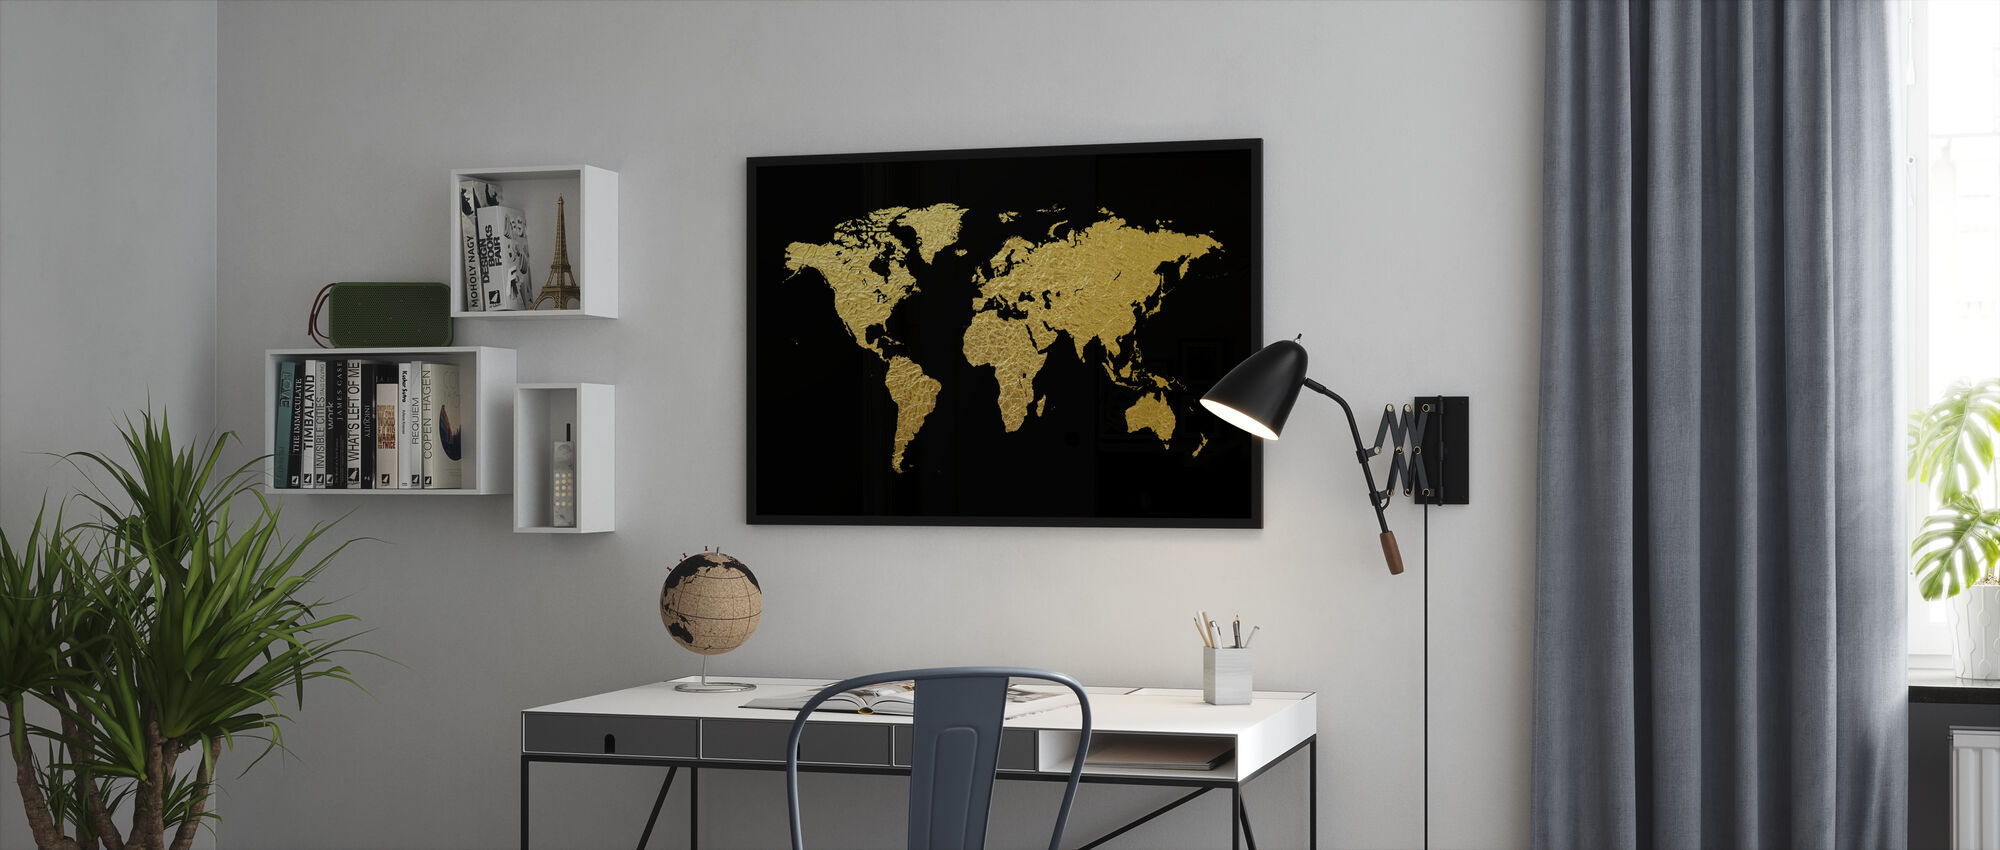 Gold World Map with Black Background - Framed print - Office